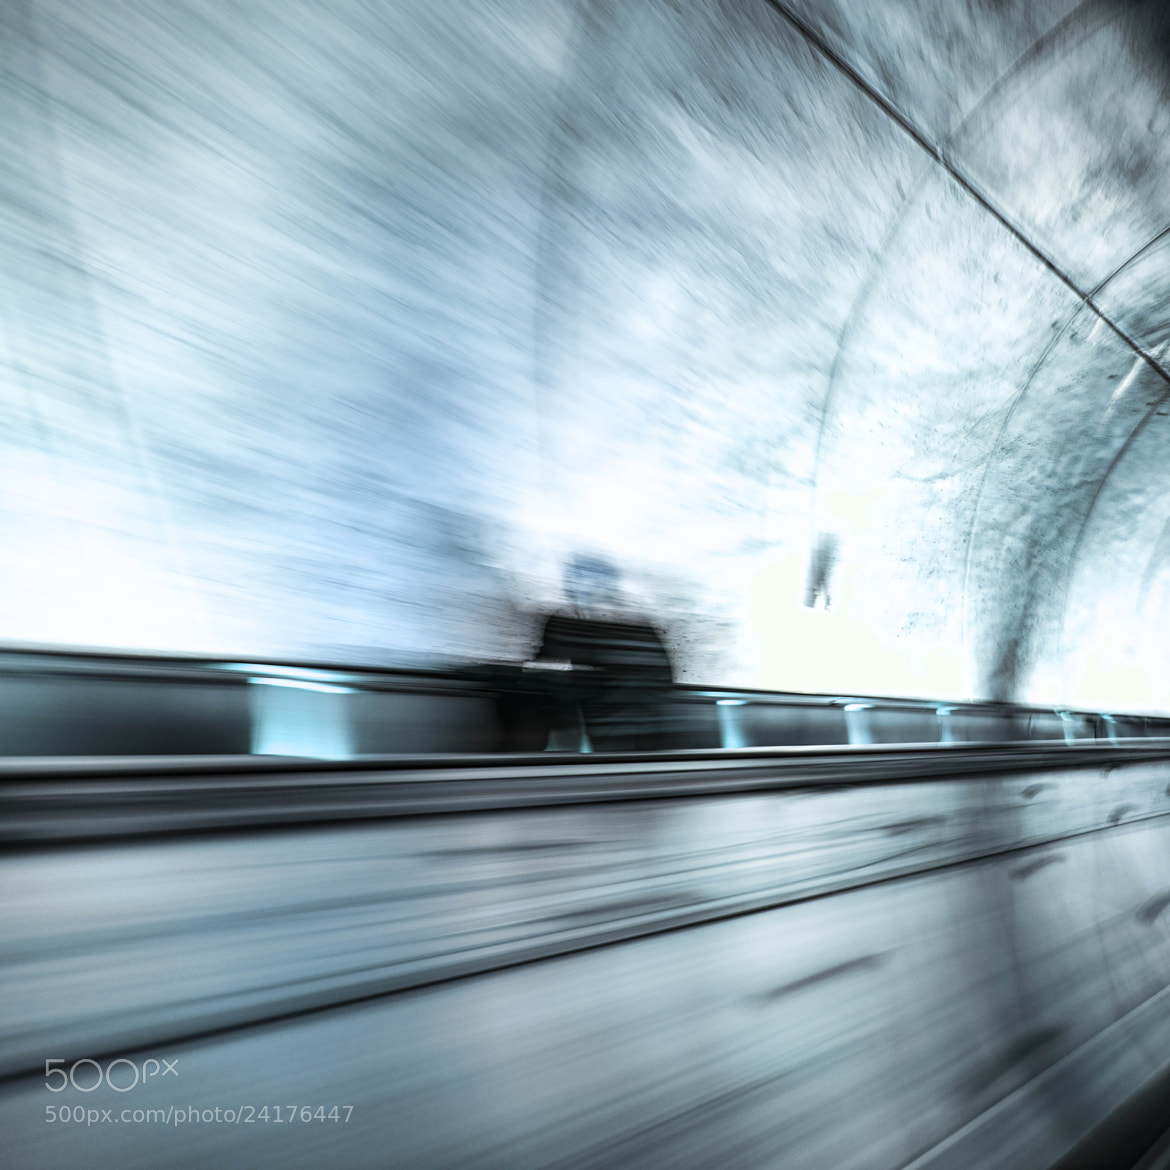 Photograph Passenger  by Coolor Foto on 500px